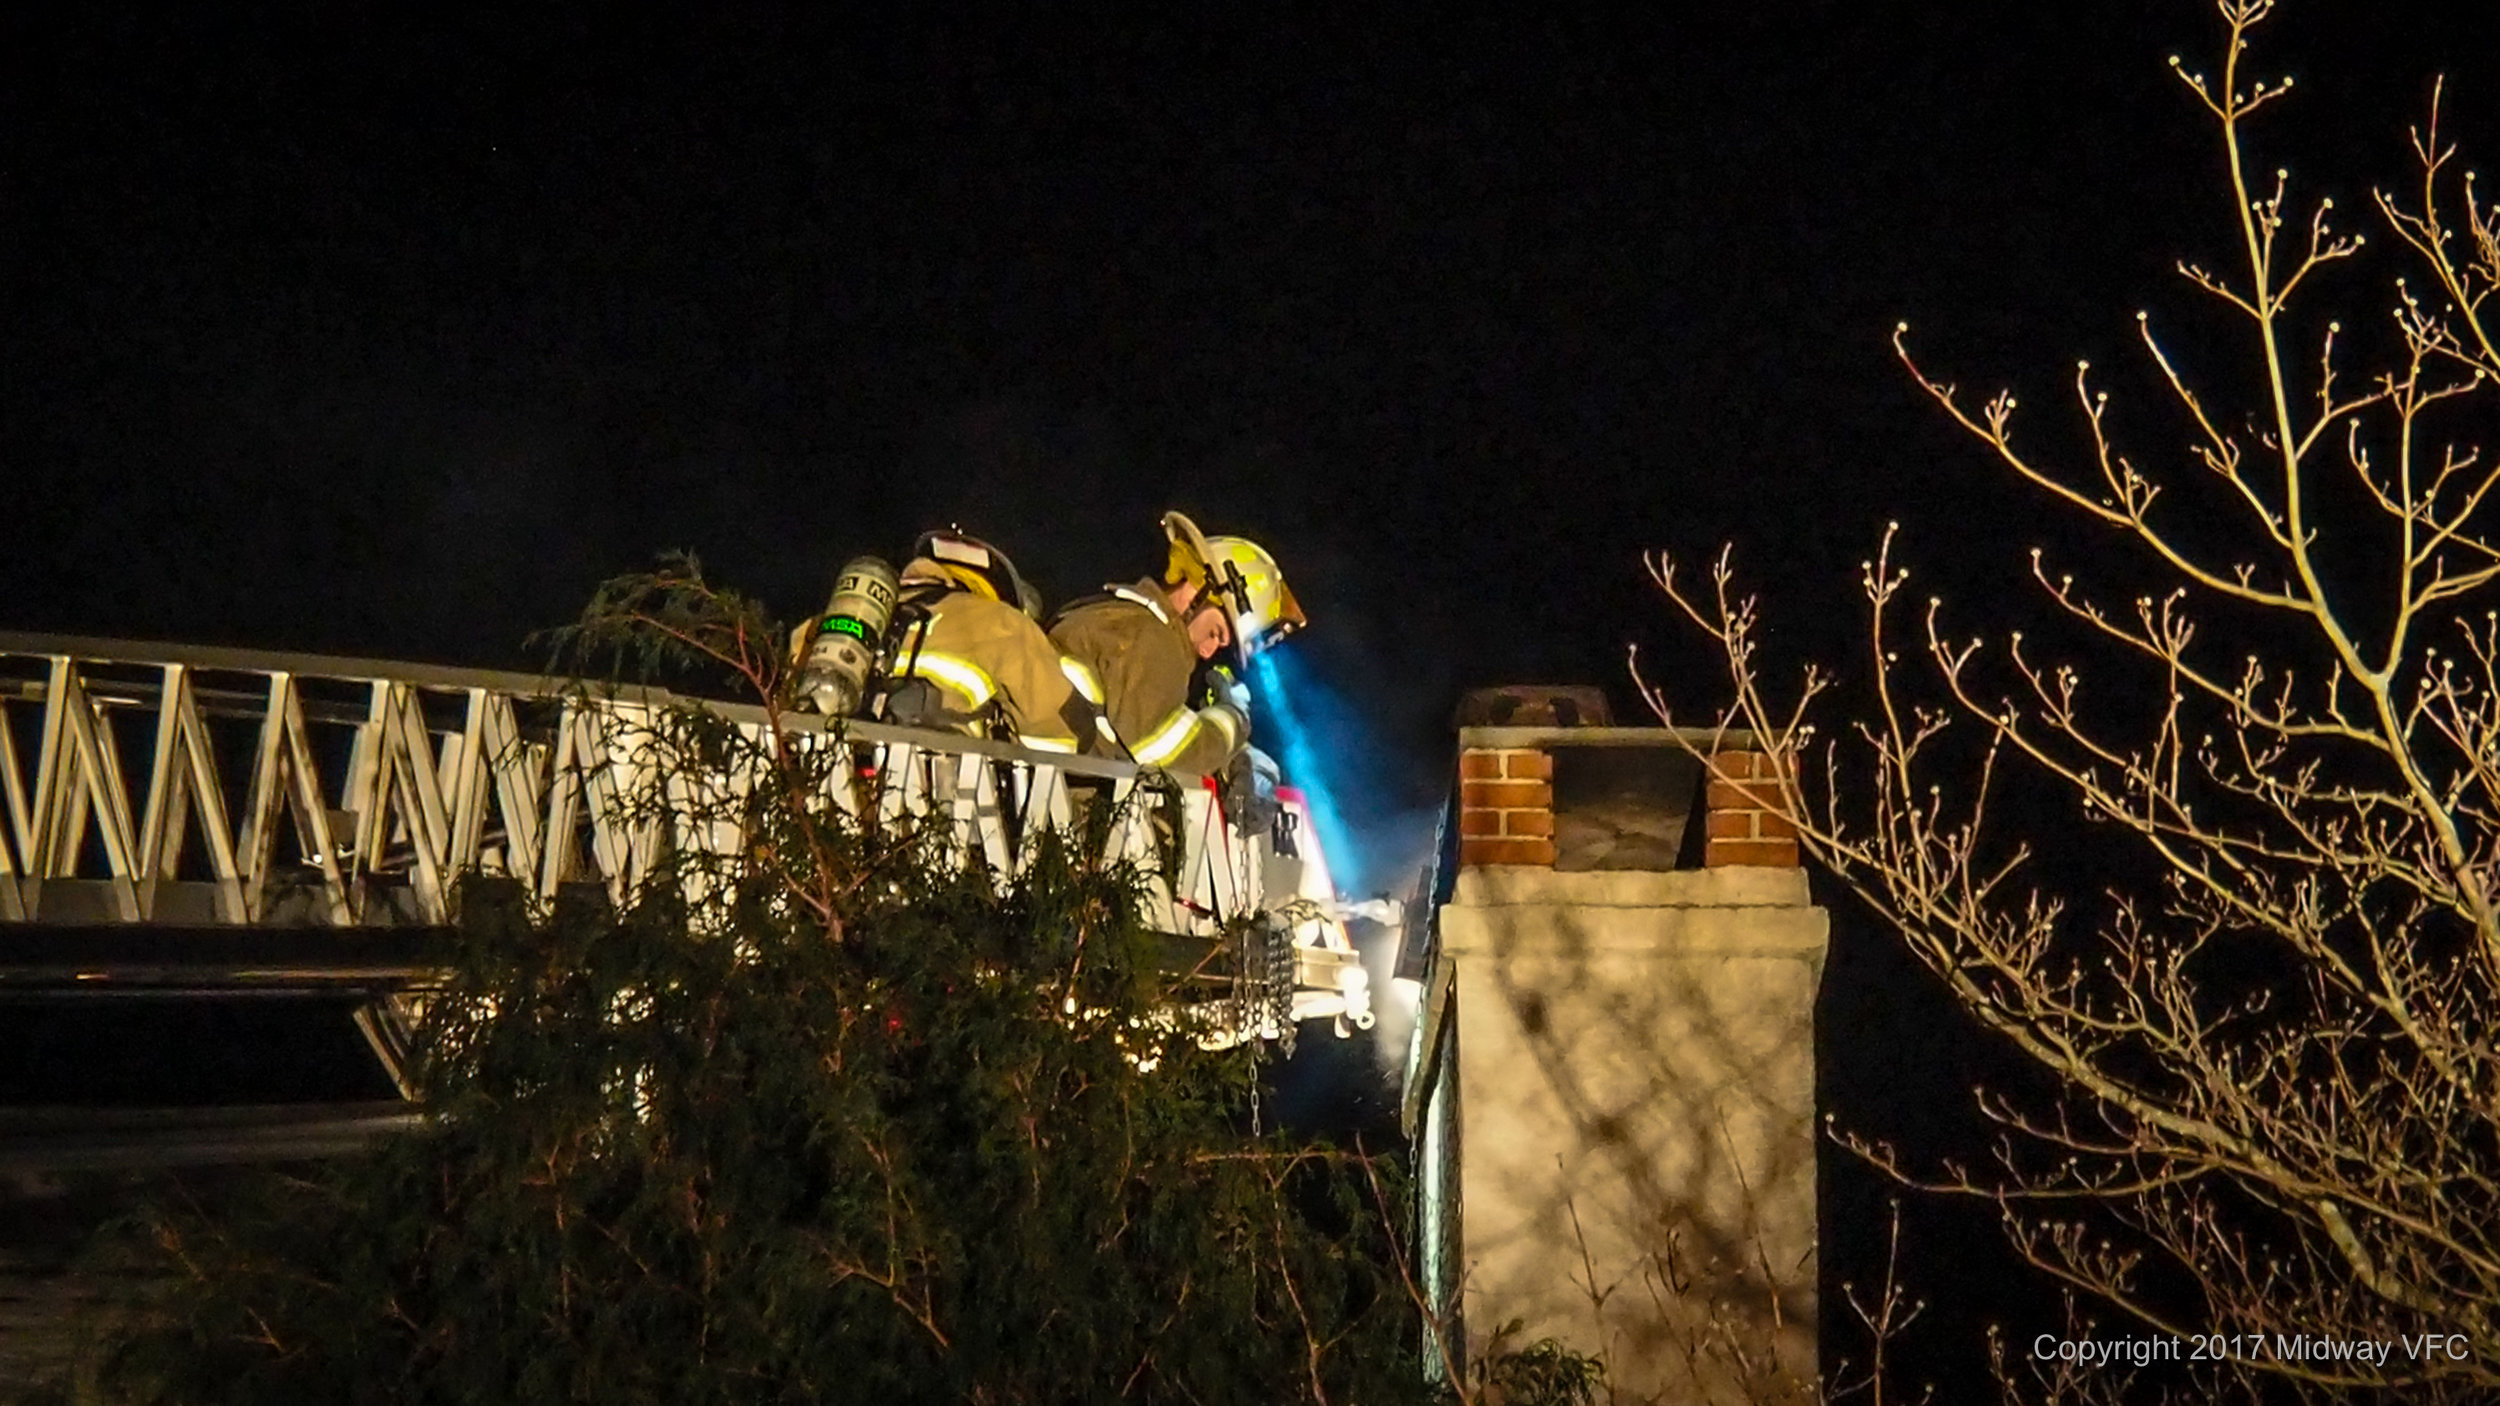 2017.12.14 at 11:29 PM Midway Volunteer Fire Company responded to a chimney fire at a residence on Hansell Road in Buckingham Township.There was no apparent structural damage.Neither the residents or first responders were injured at the scene.